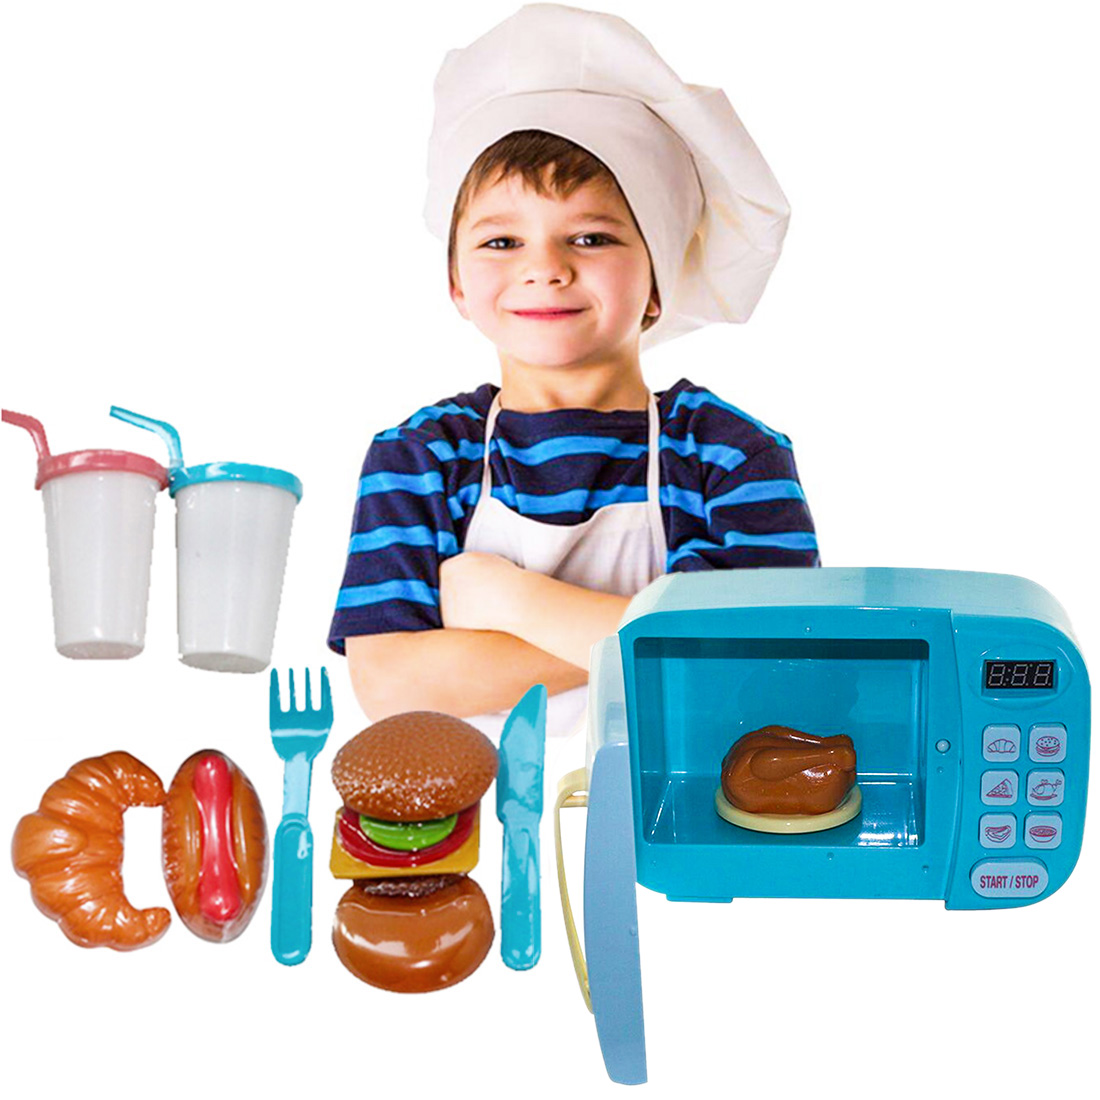 Children Pretend Play Toys Electric Home Appliances Simulation Microwave Oven Hamburger Roast Chicken with Light Rotate Playset